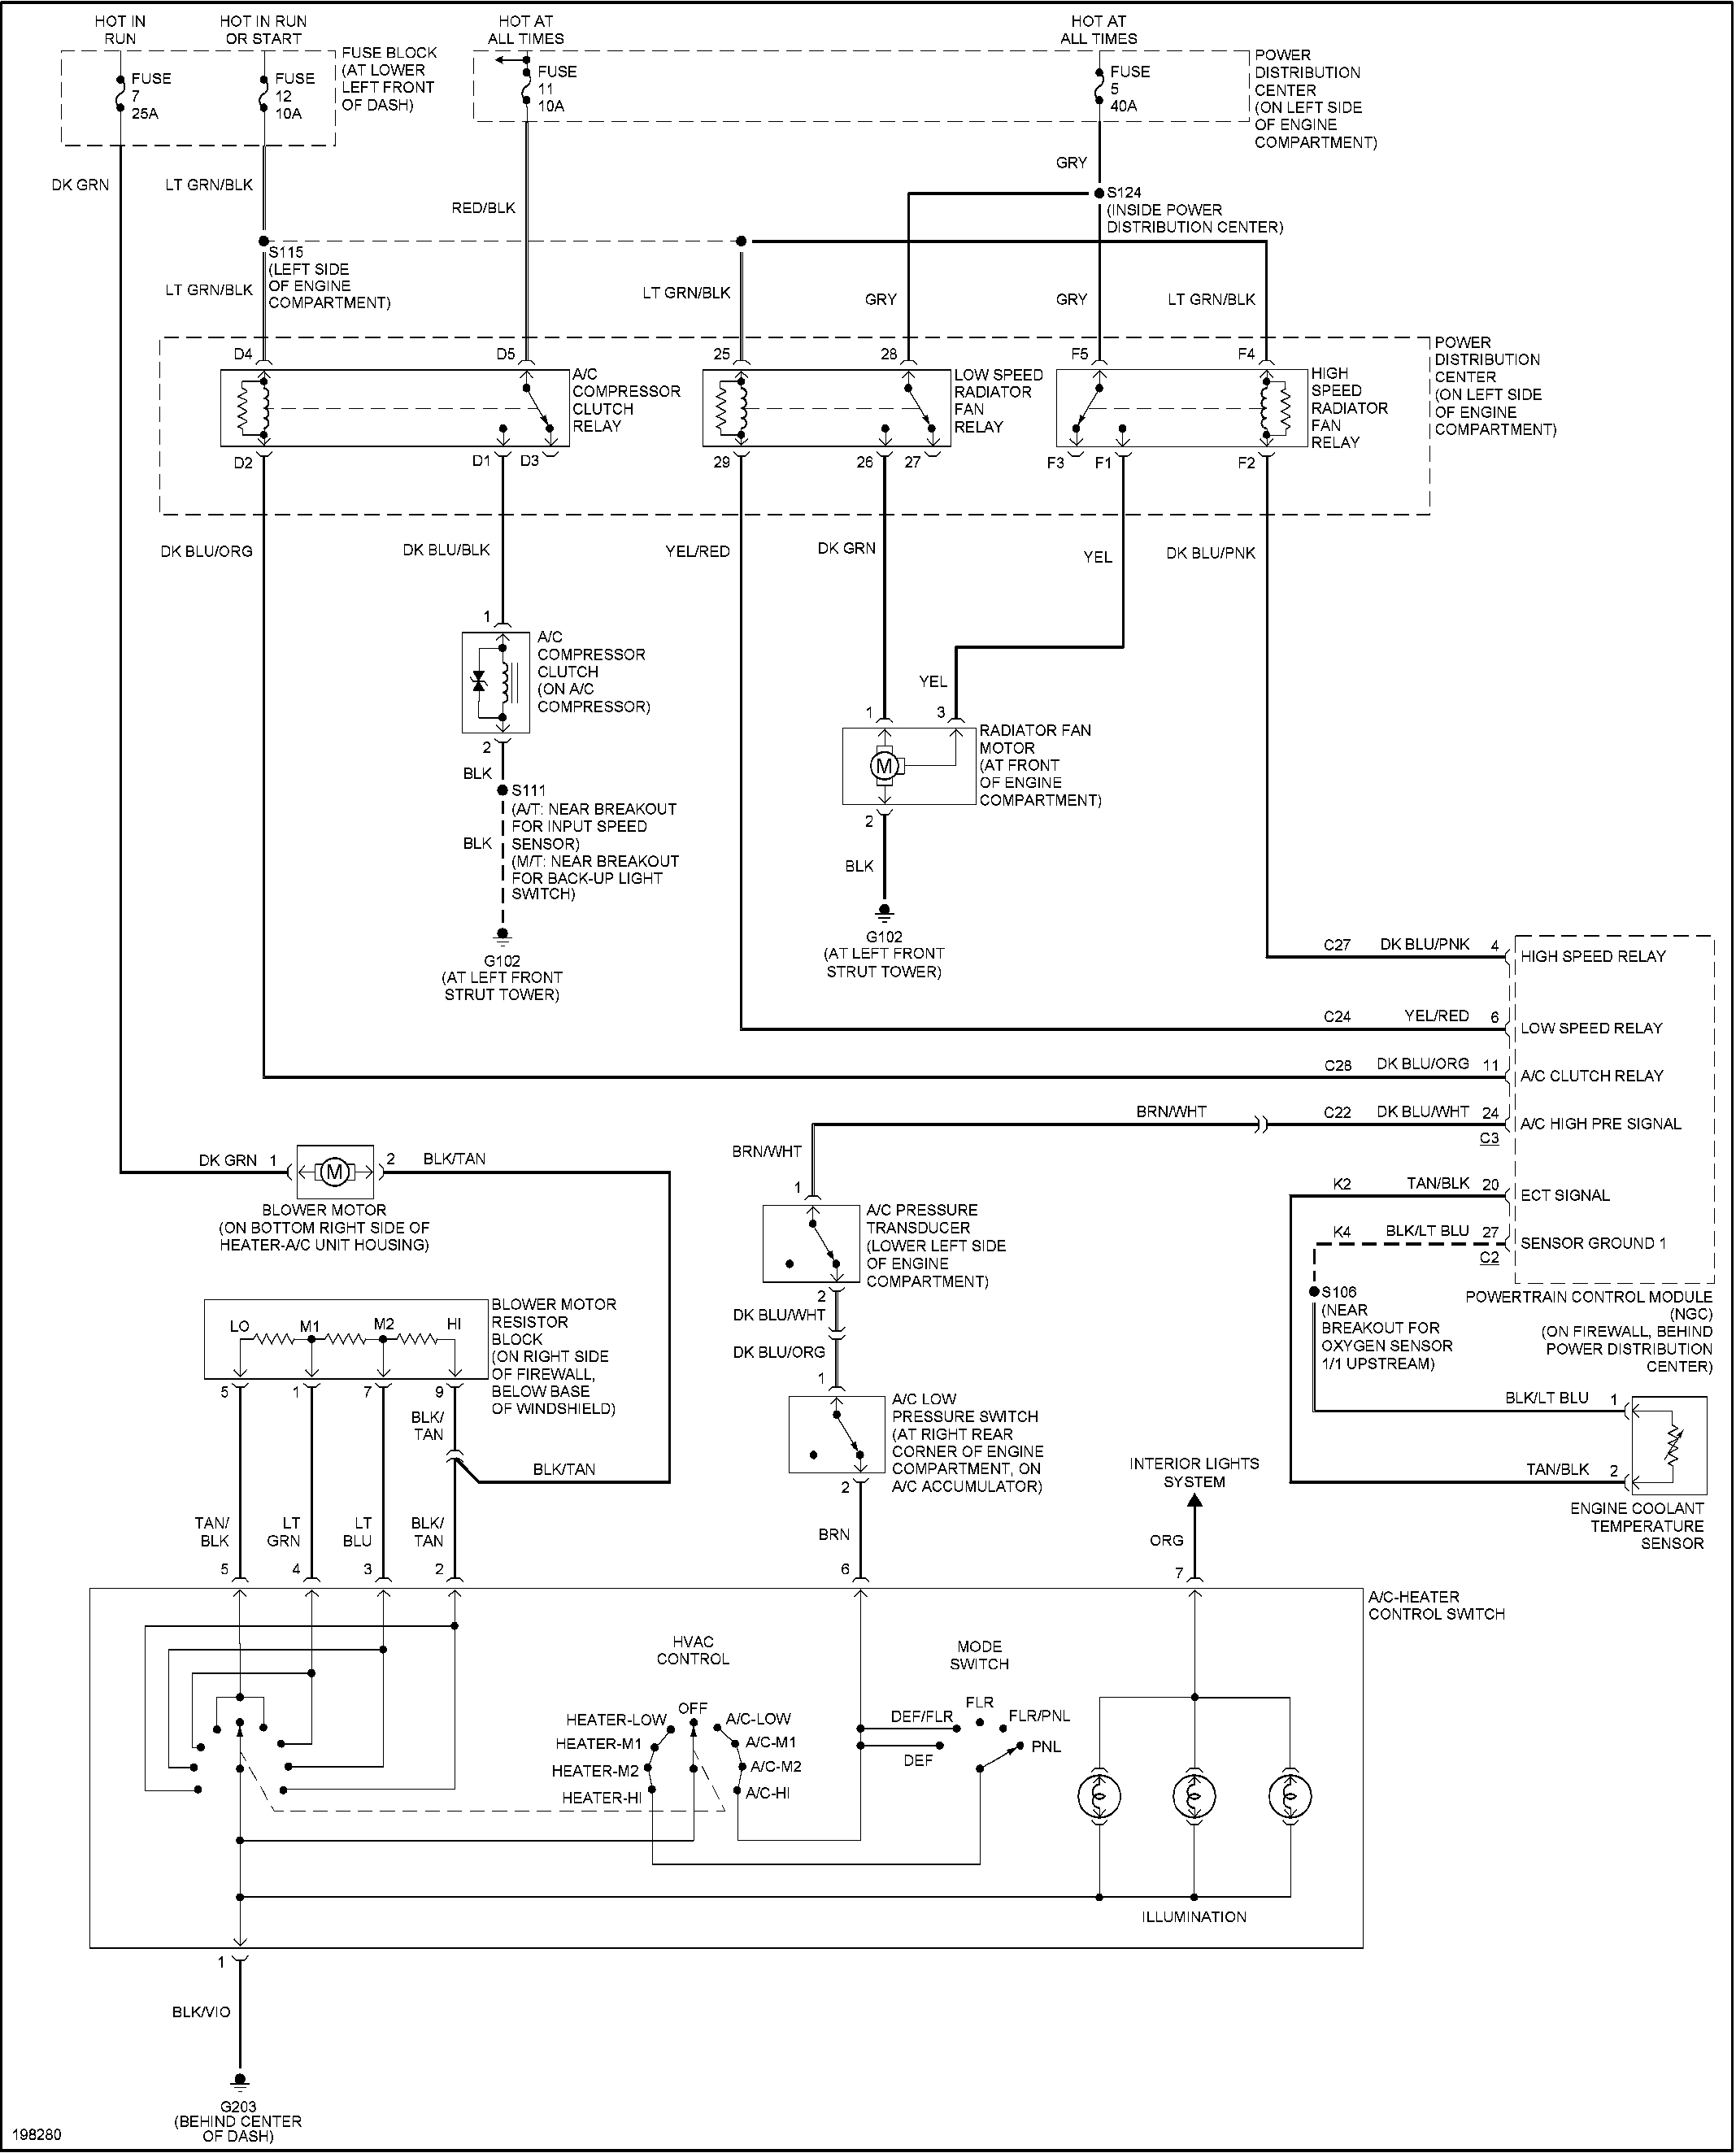 isuzu npr abs wiring diagram wiring library. Black Bedroom Furniture Sets. Home Design Ideas